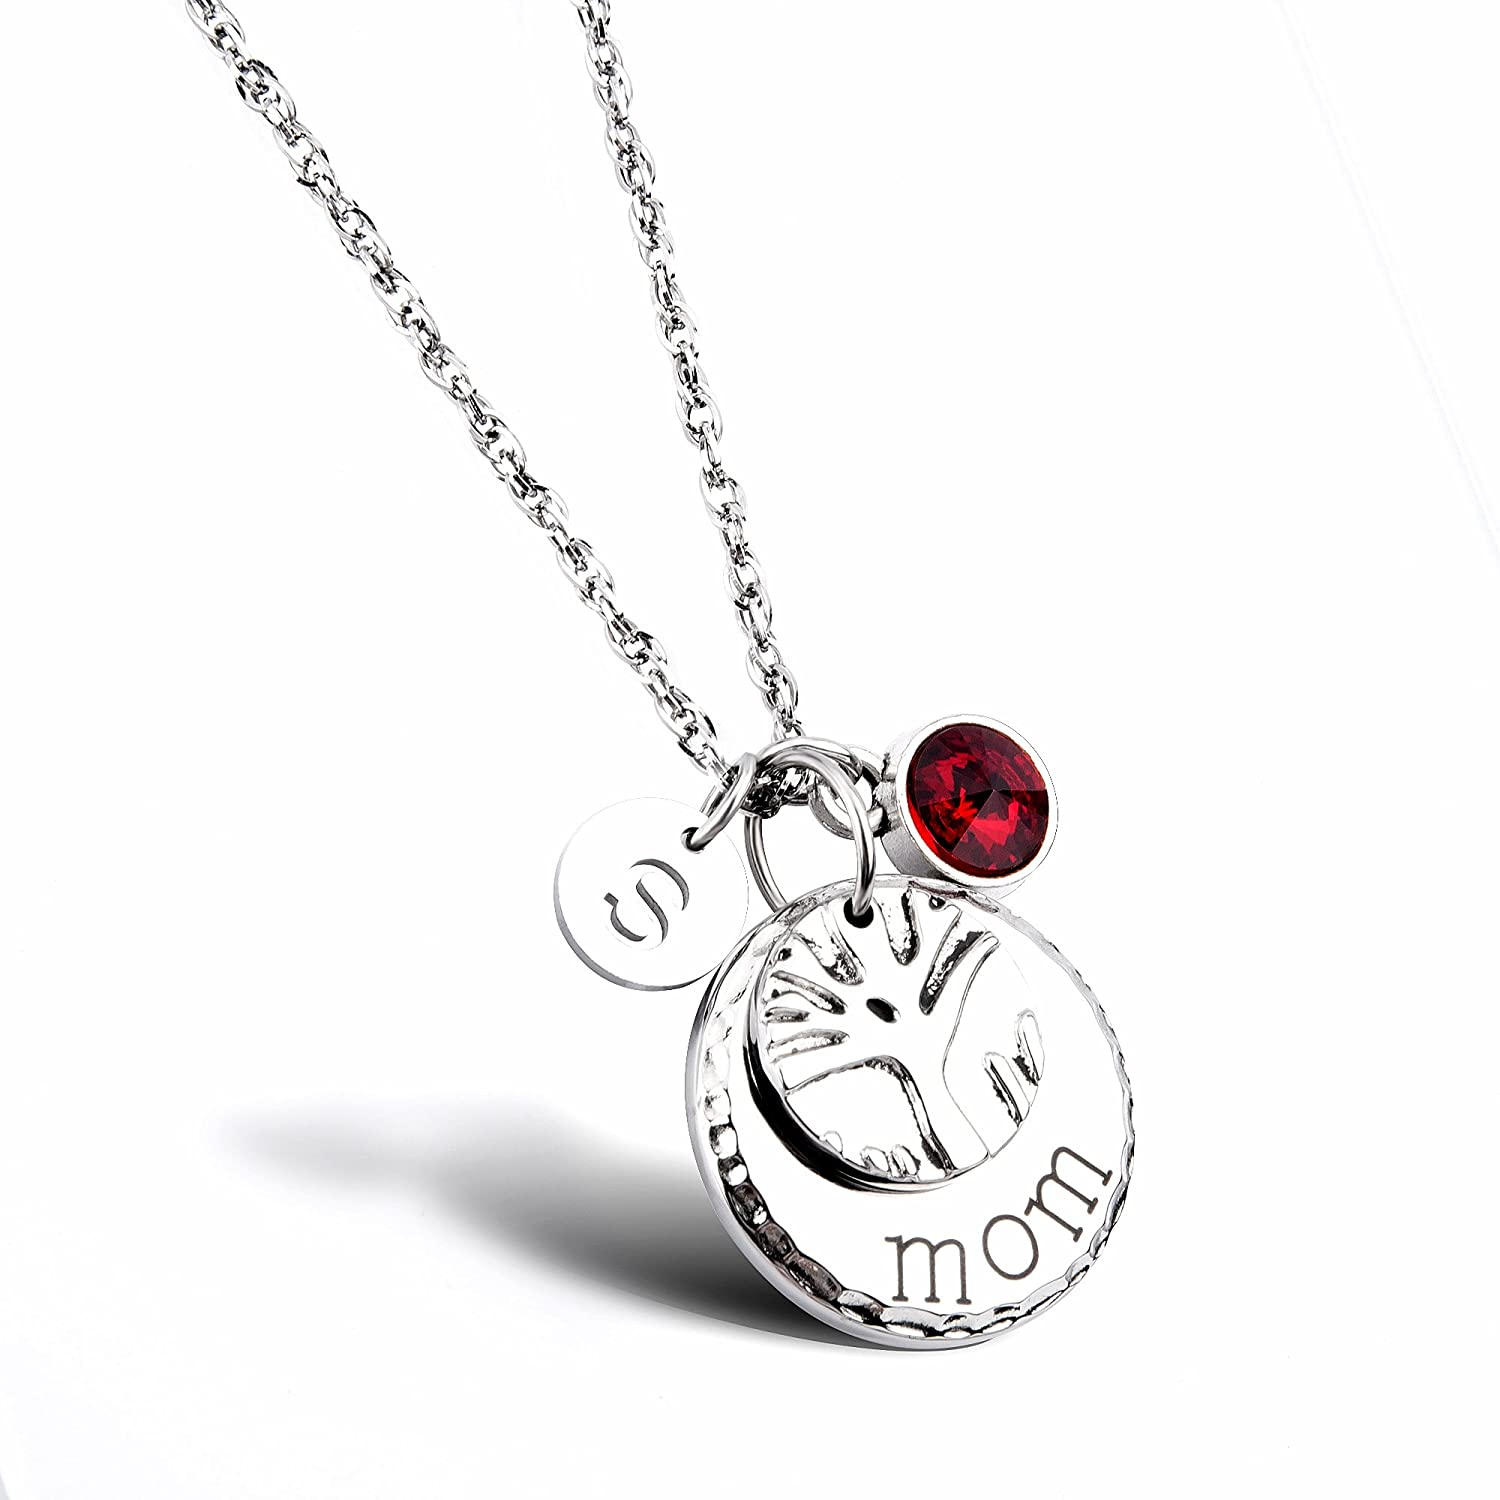 Mom Family Tree Necklace Personalized Mother Necklace With Birthstones Crystal Initial Charm Christmas Gift For Mom Wife Aunt Grandma Mother S Day